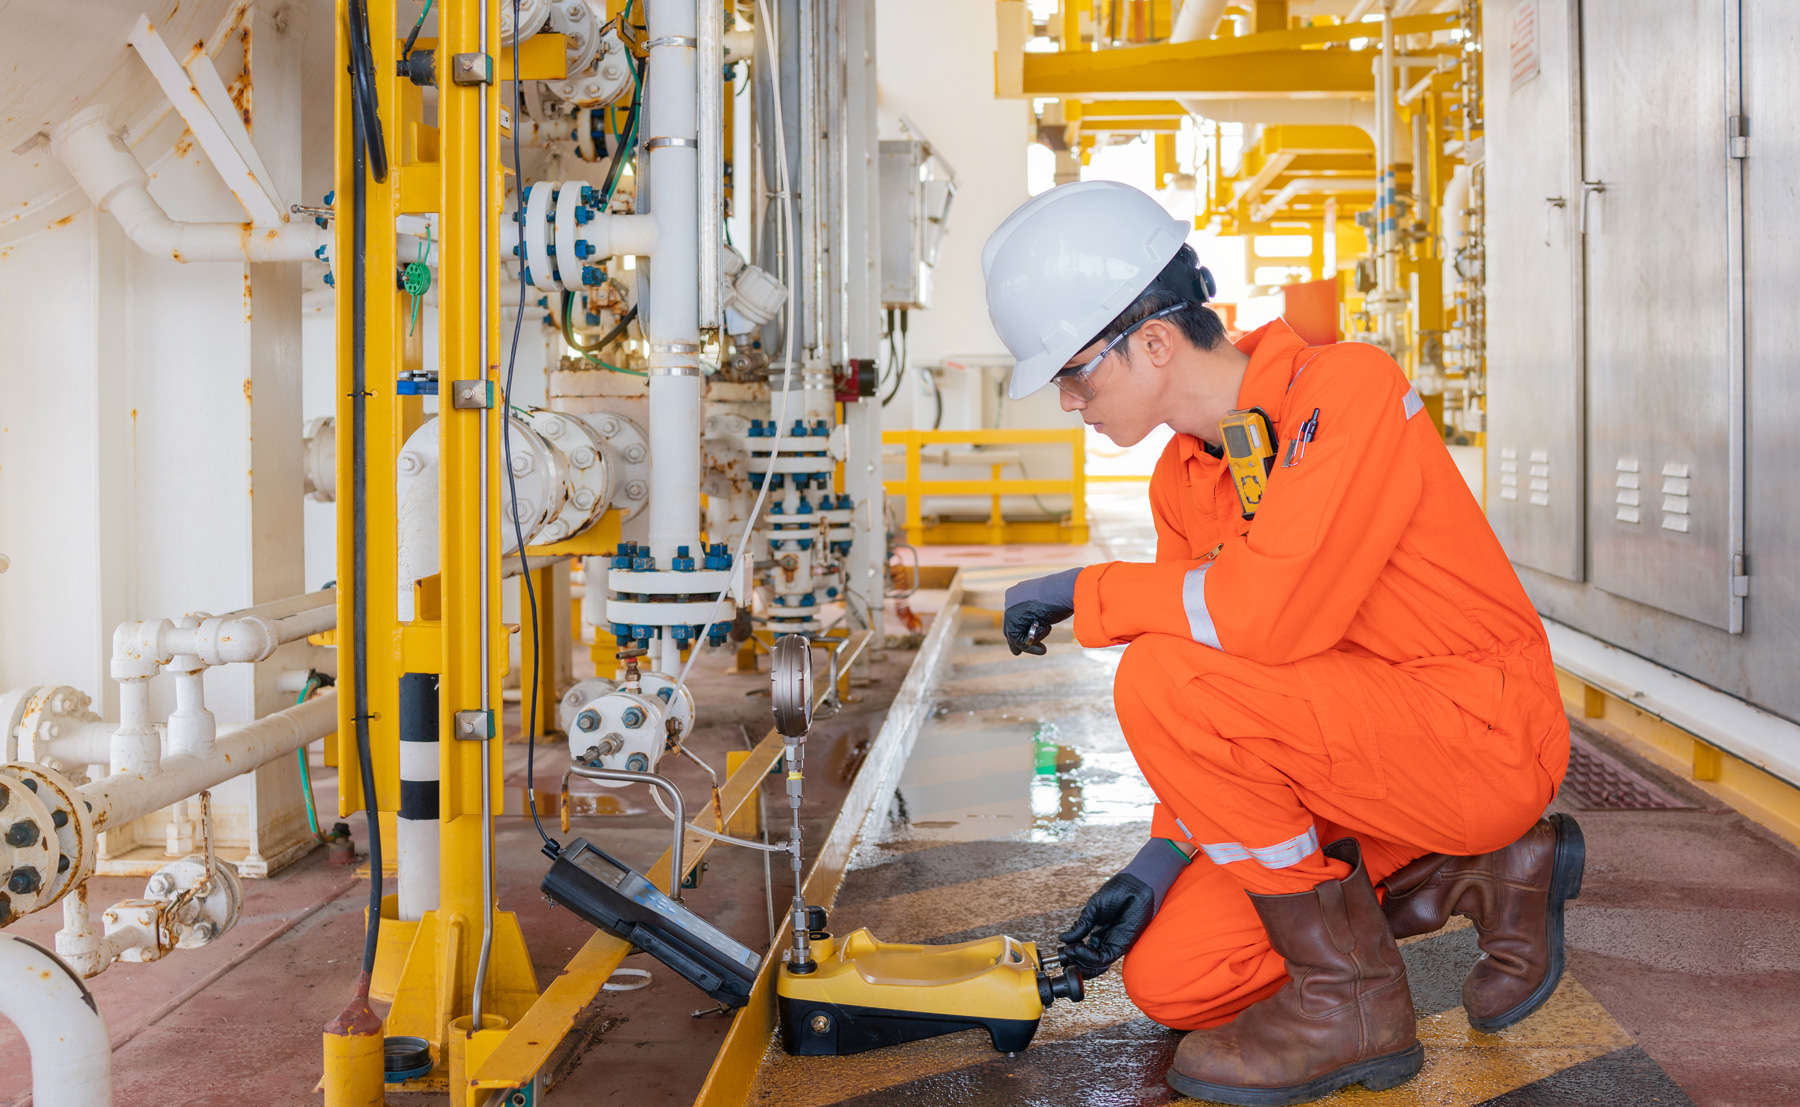 Territory Instruments located at Darwin, NT Australia specialises in Sales, Installation & Calibration Service of Instrumentation equipment in the Oil & Gas industry.